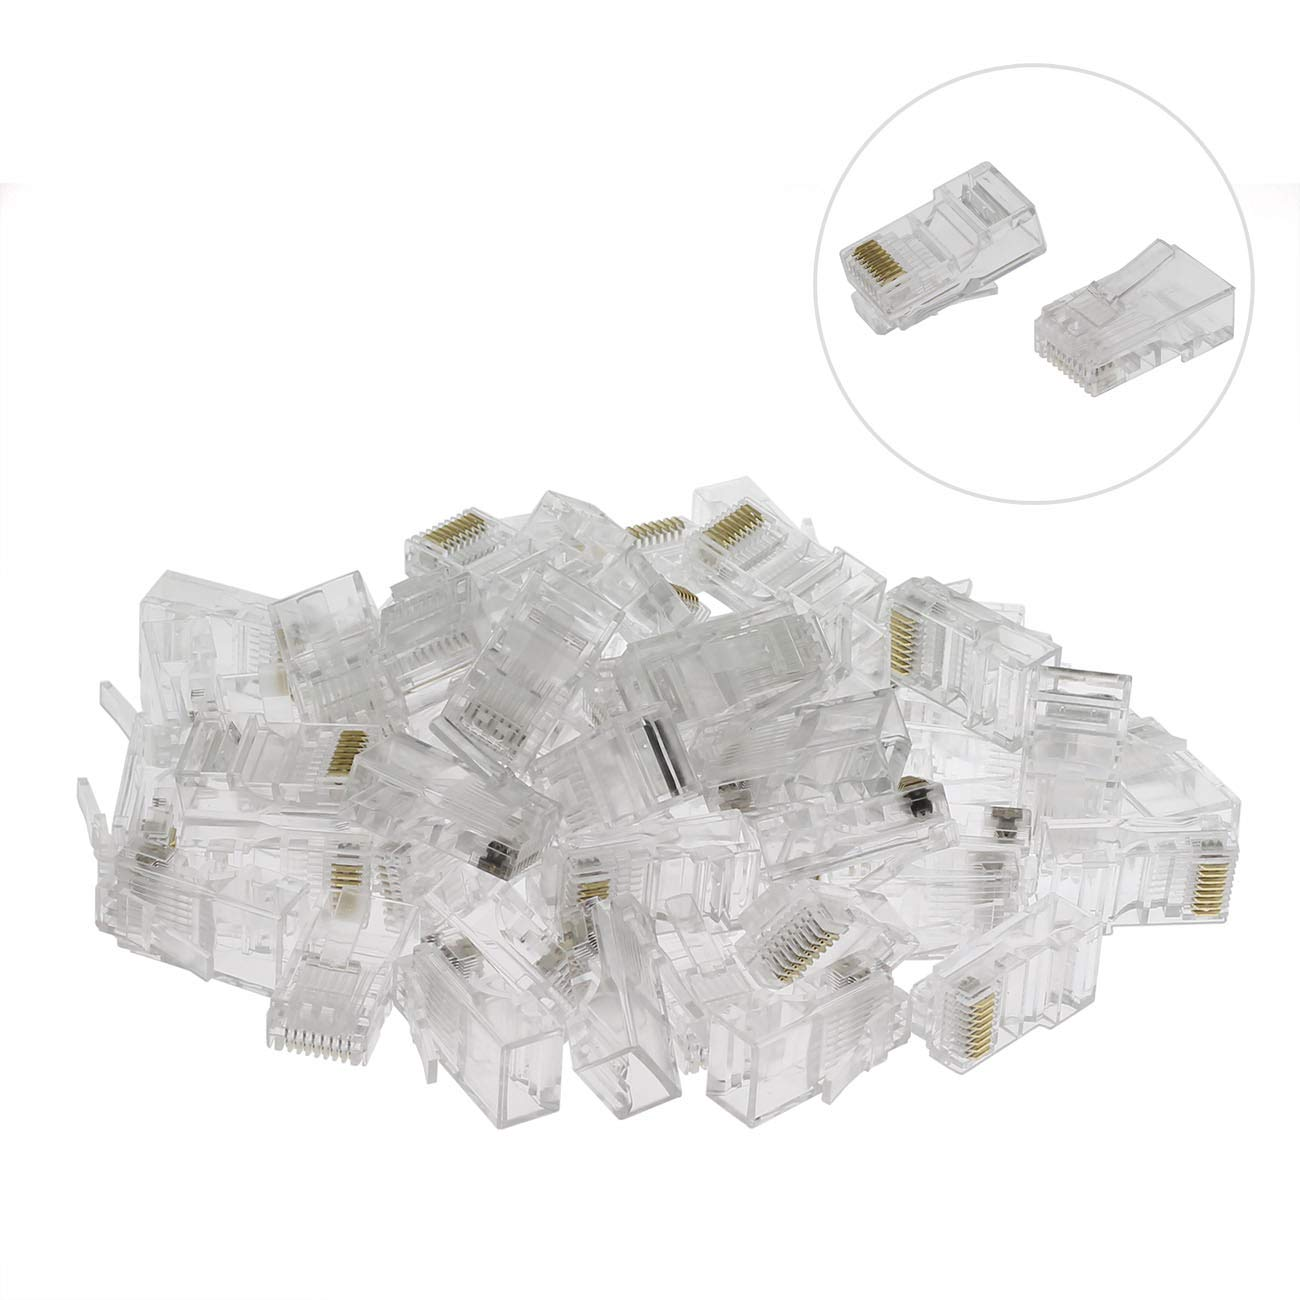 ZYAMY 50pcs RJ45 8P8C Cat5e Network Cable Crystal Heads with Boots Cover Ethernet Crimp Cable Modular Plug Gold Plated Shielded CAT 5e Connector